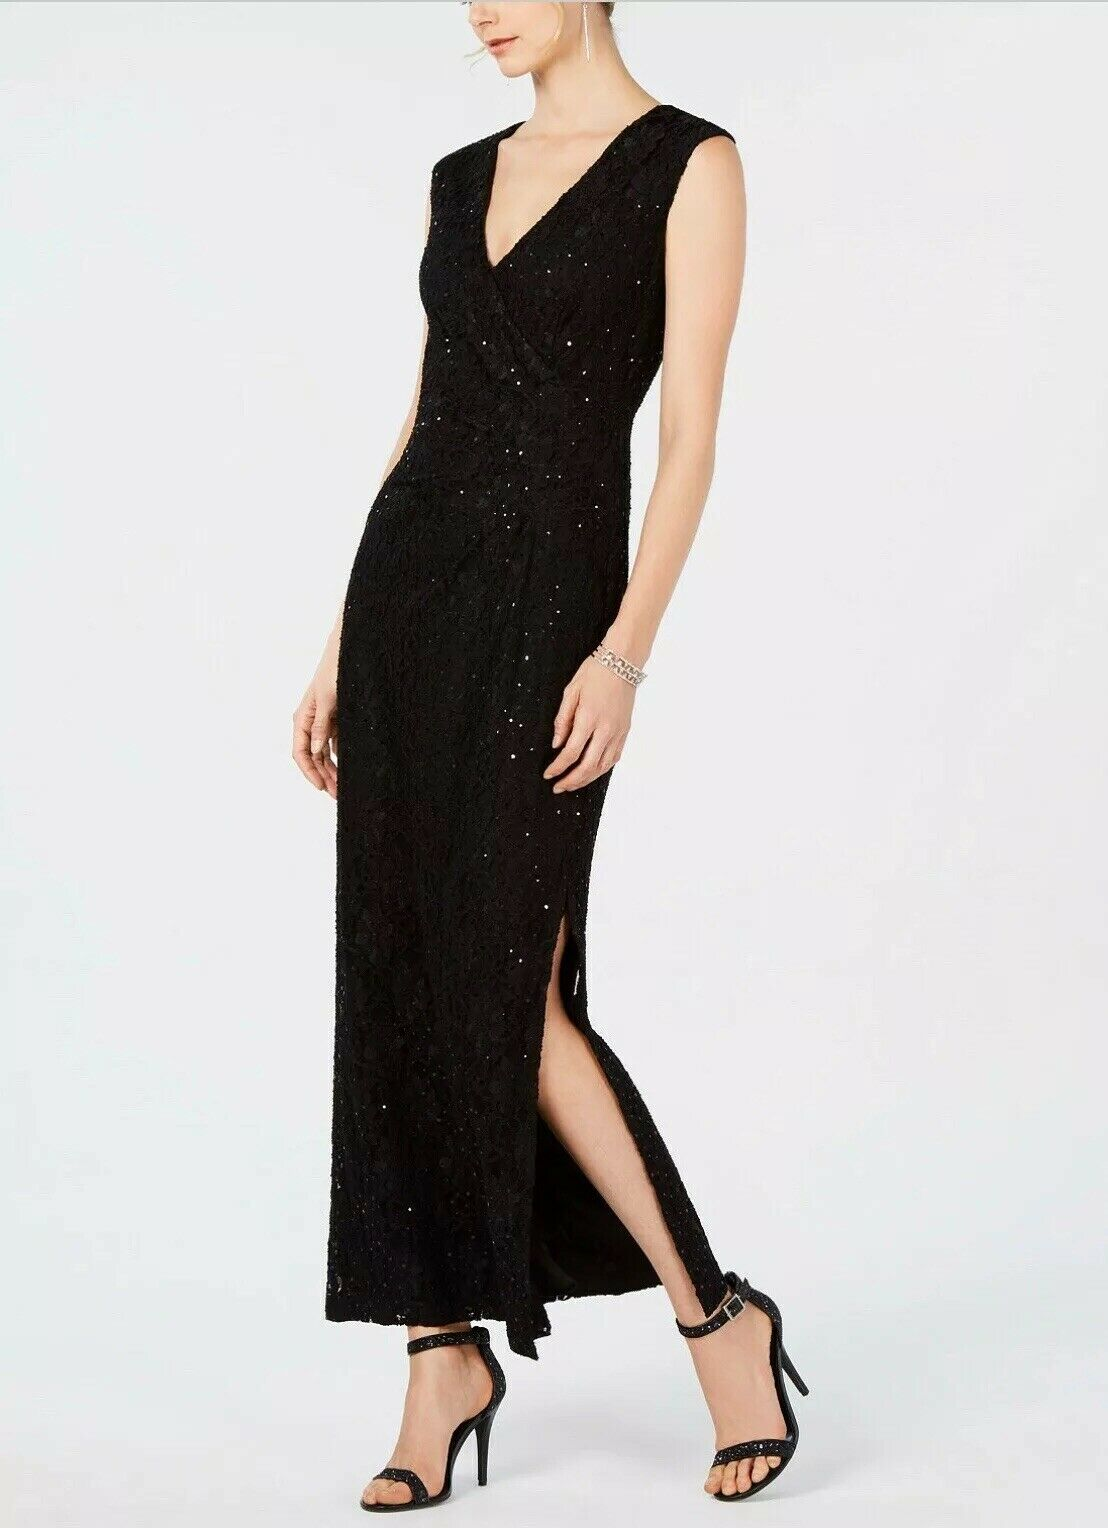 Connected Sequined Lace Gown Women's Party Navy Dress Size 8 P